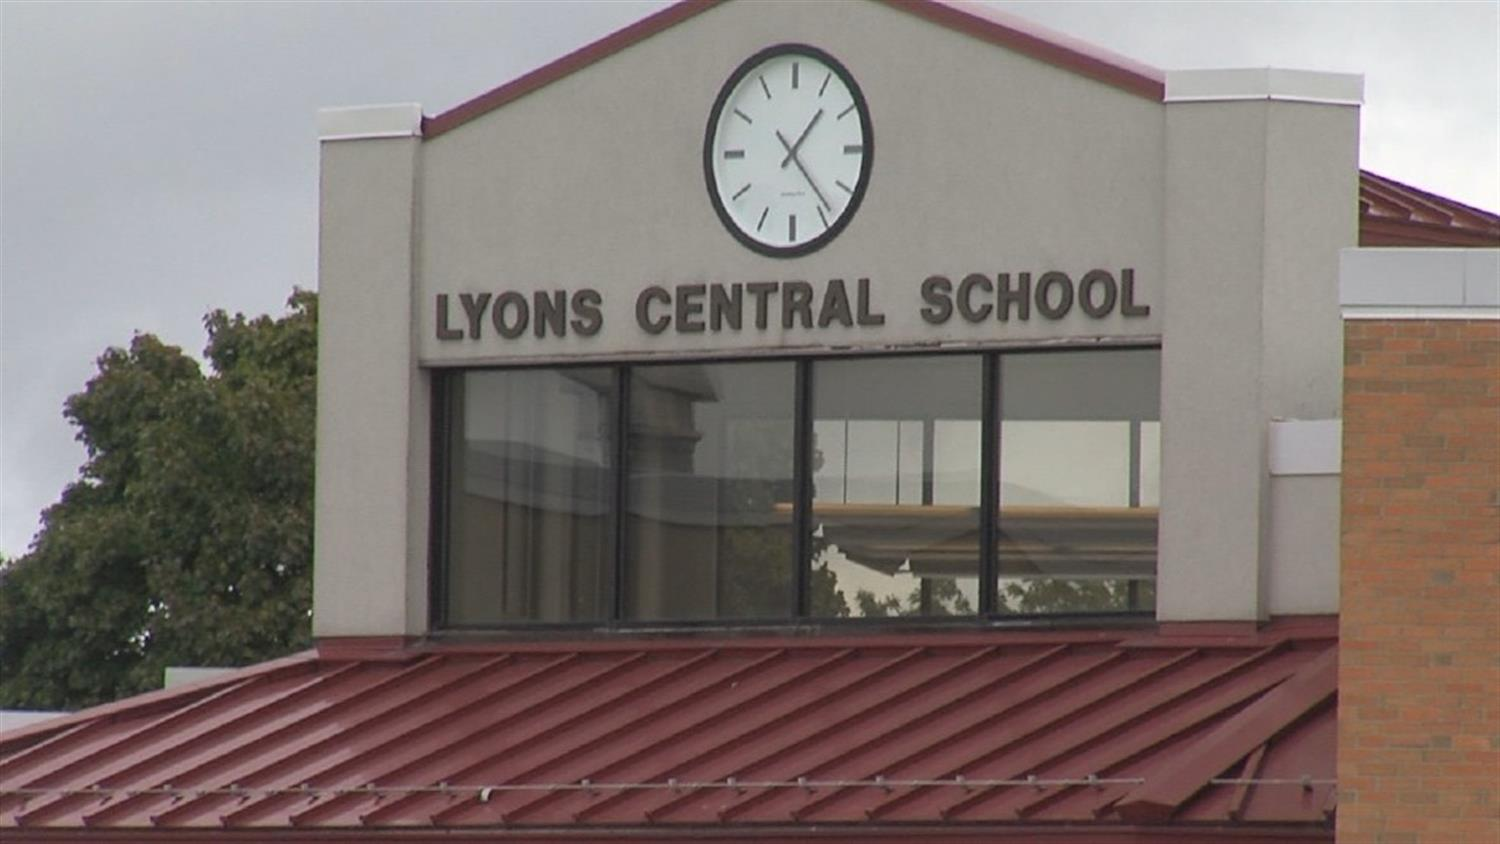 New elementary school in Lyons? Planning committee could consider it